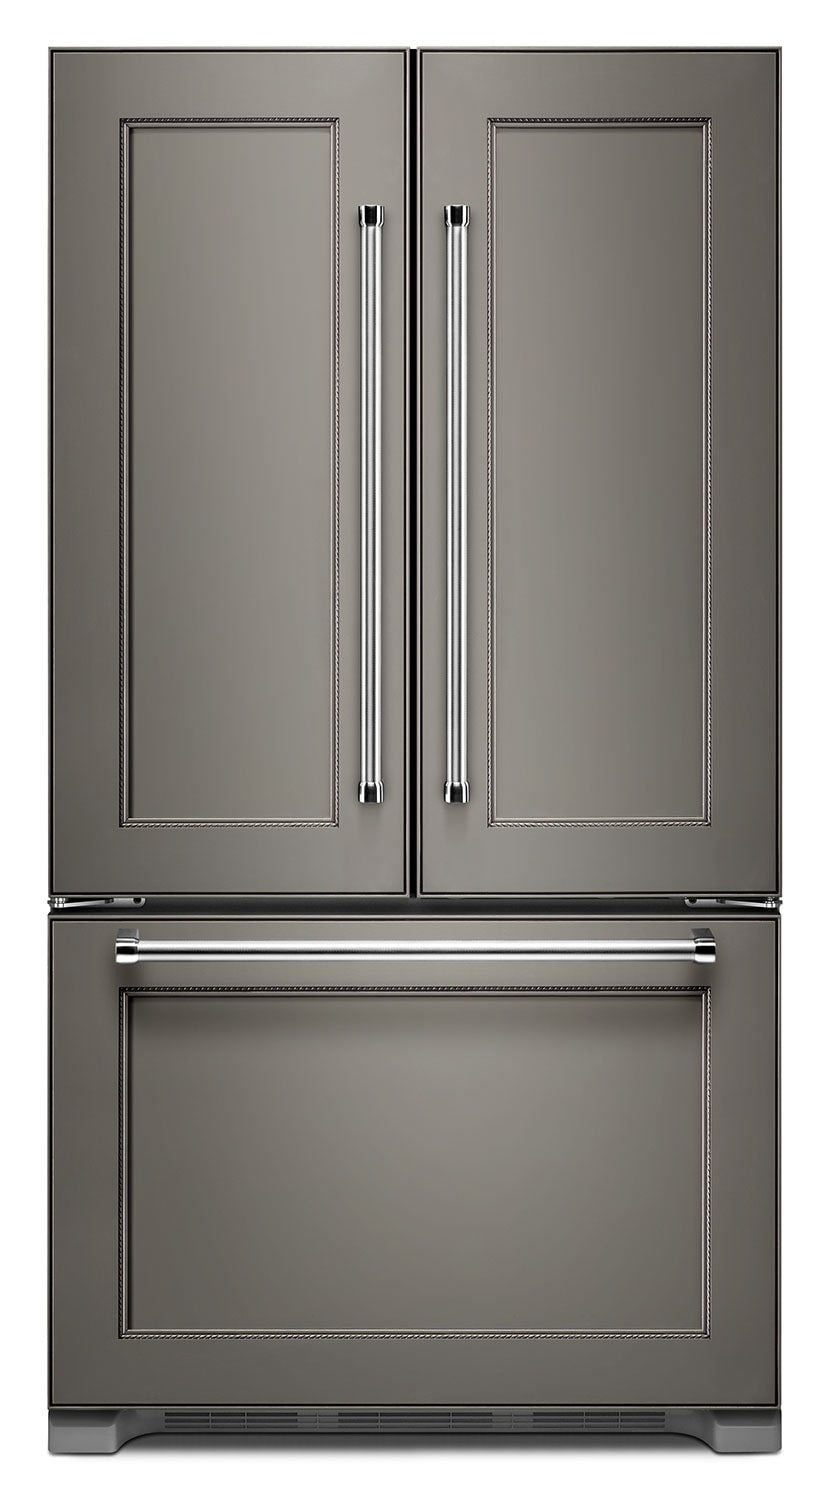 Refrigerators and Freezers - KitchenAid 22 Cu. Ft. French Door Refrigerator with Interior Dispenser - Panel-Ready